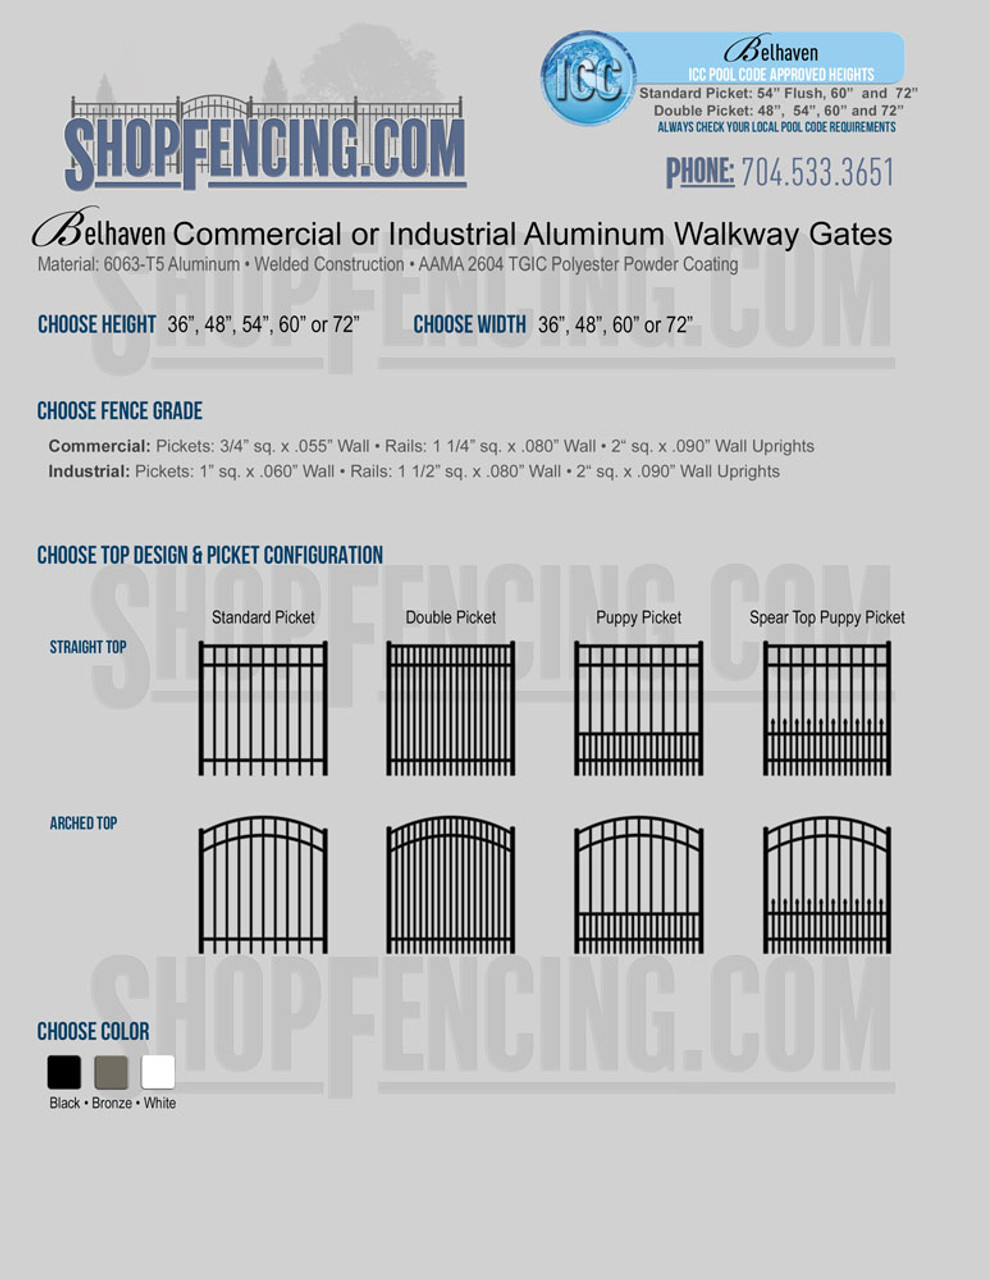 Commercial or Industrial Belhaven Aluminum Walkway Gates From ShopFencing.com